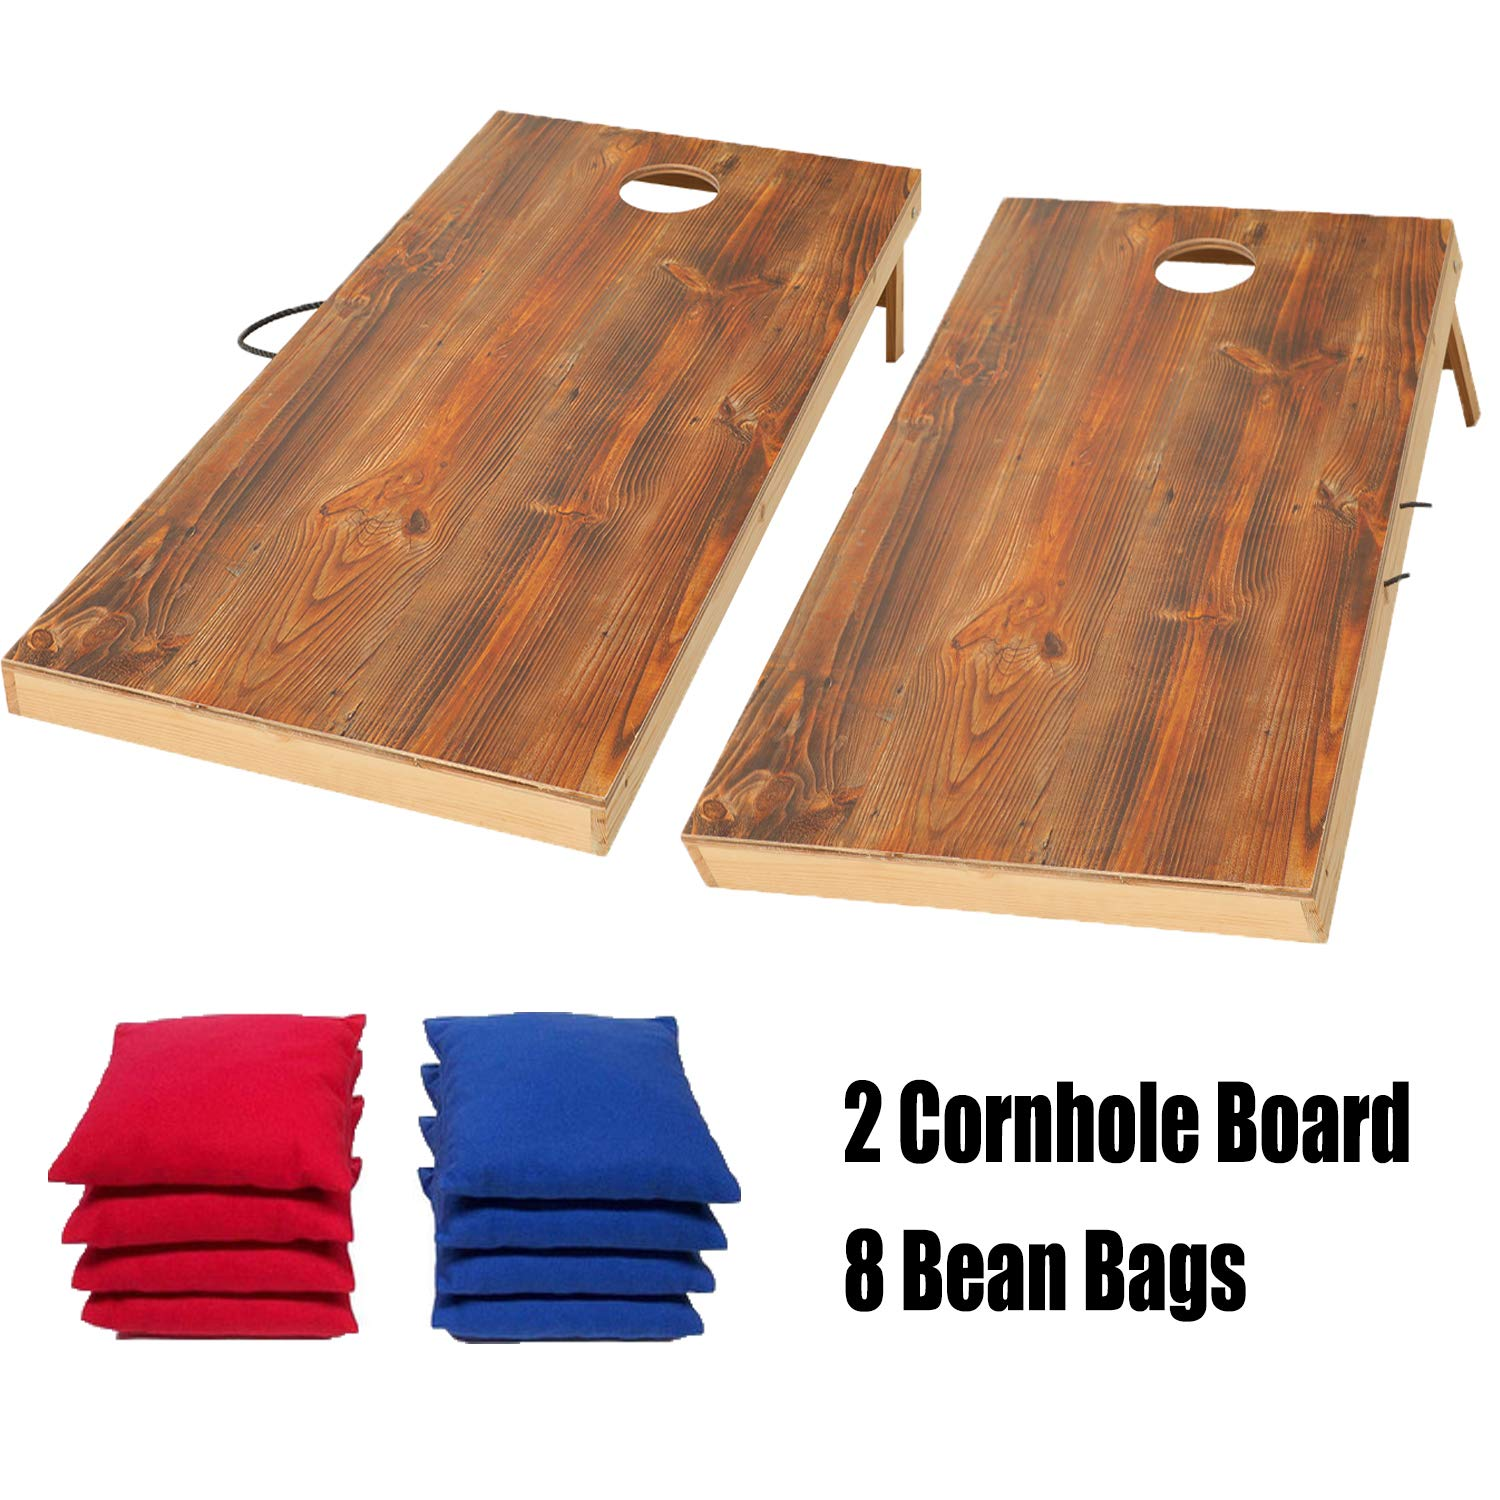 OOFIT Solid Wood Premium Cornhole Game Set with Vintage, Durable Printed Surface and Underneath, Portable CornHole Bean Bag Toss Game Tailgate Regulation Size) OOFIT-SBD-MW1-2M3